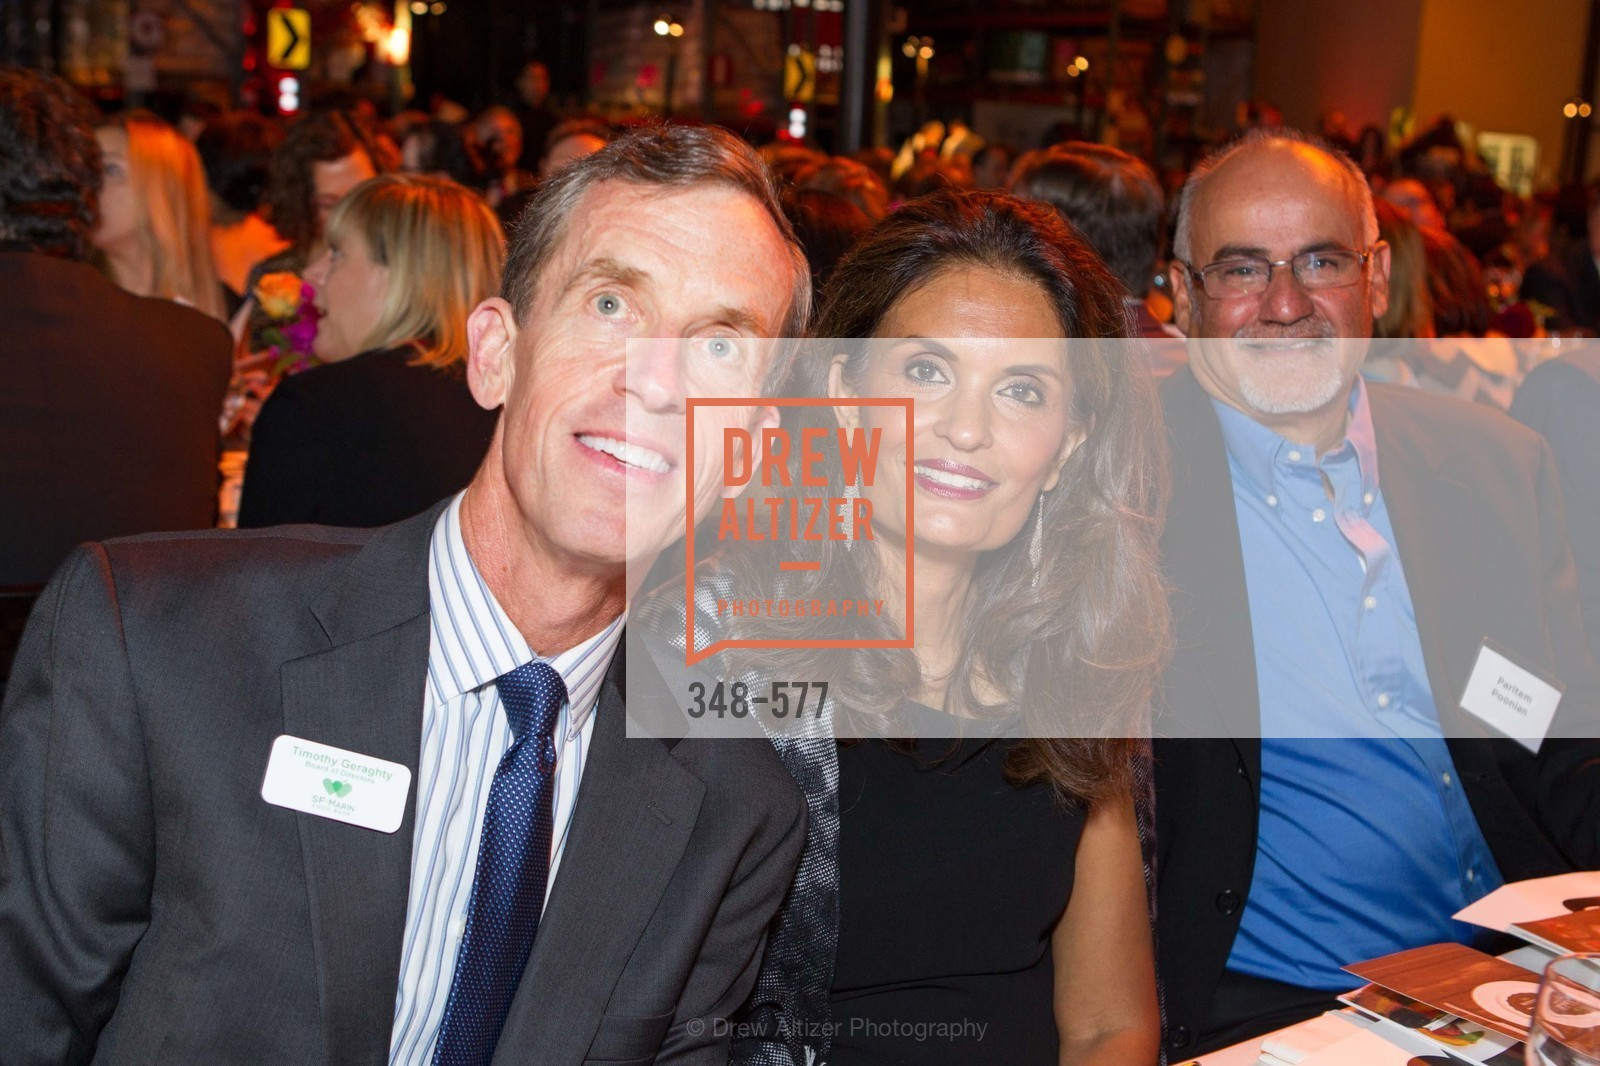 Timothy Geraghty, Nita Poonian, Paritem Poonian, SF-MARIN FOOD BANK One Big Table Gala, US, September 27th, 2014,Drew Altizer, Drew Altizer Photography, full-service agency, private events, San Francisco photographer, photographer california